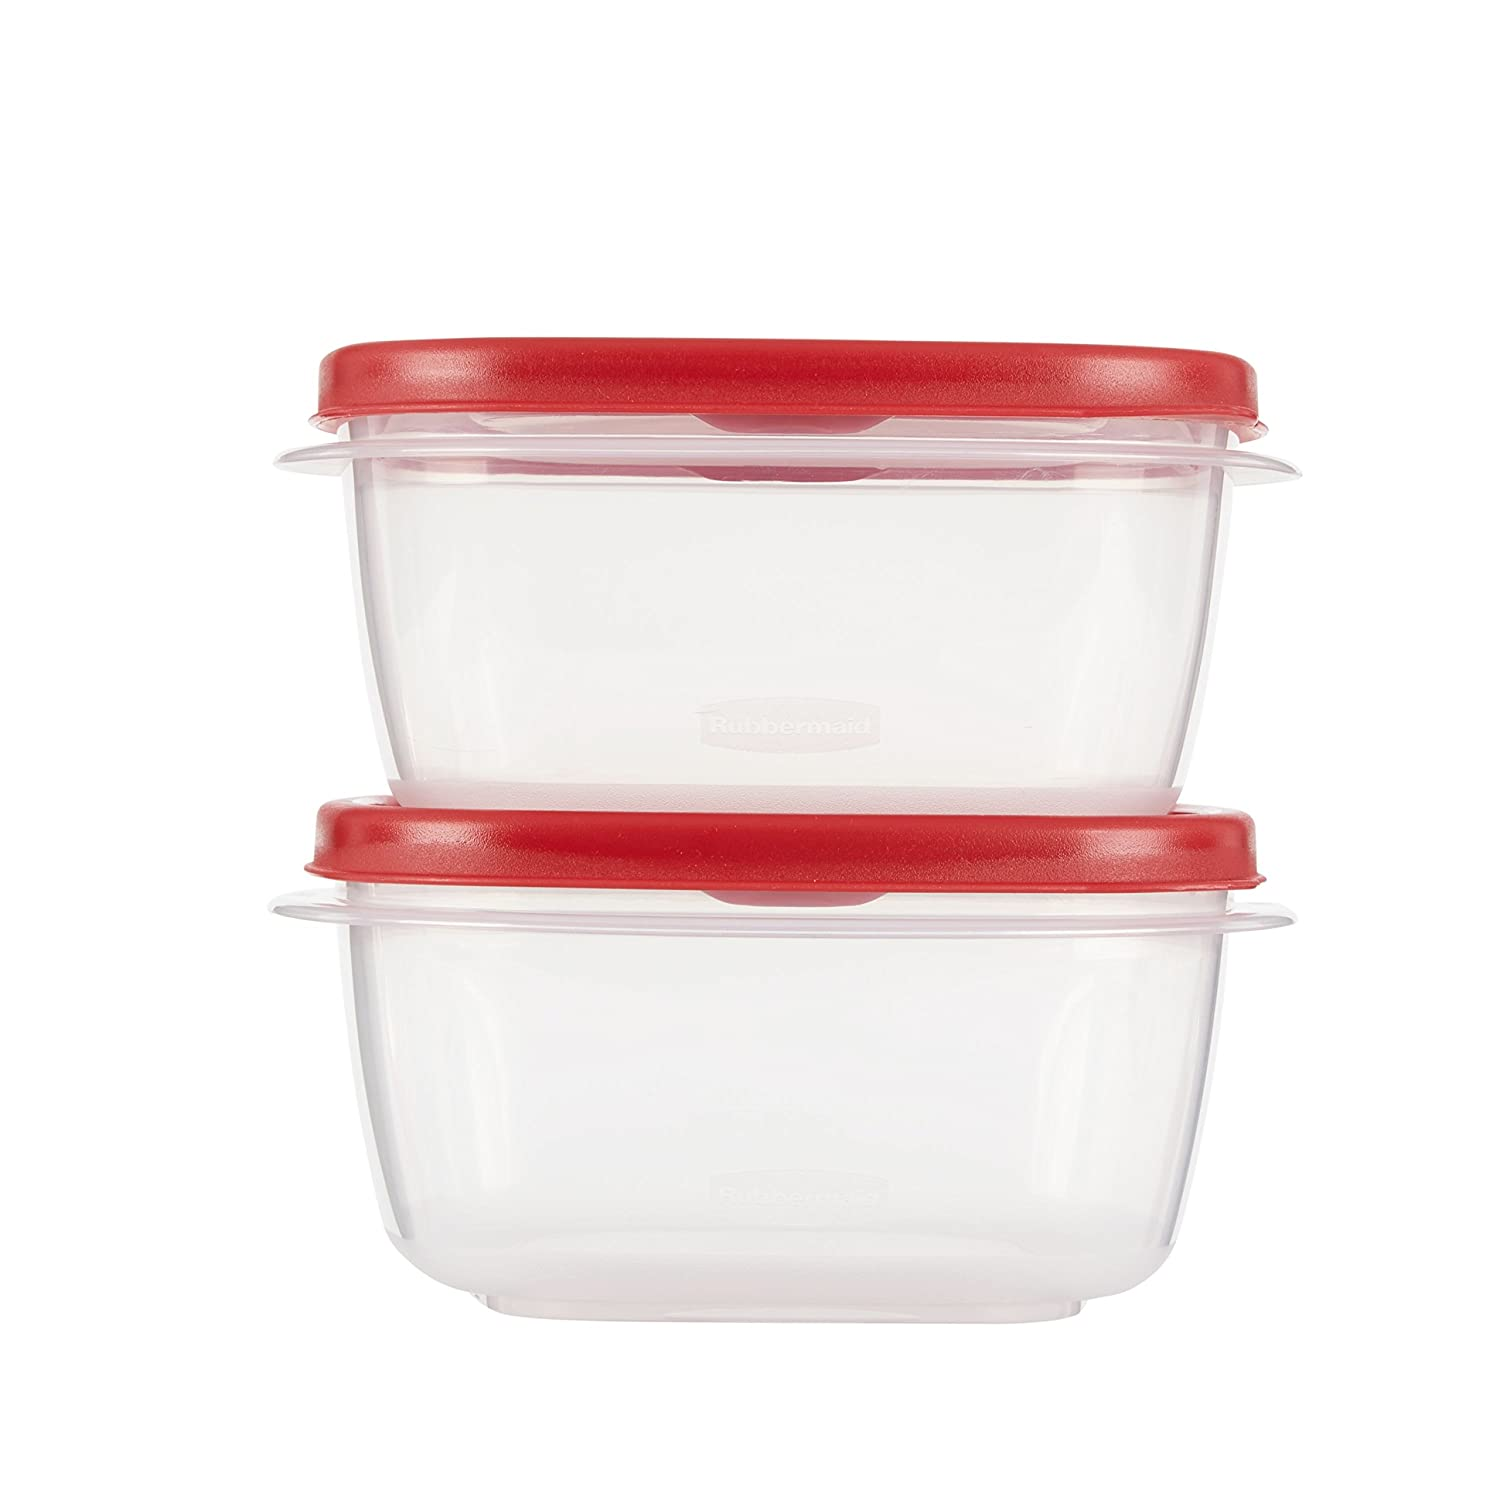 Rubbermaid Easy Find Lid Food Storage Set, 5 Cup, 4 Piece set (2 Cups and 2 Lids) 1777179